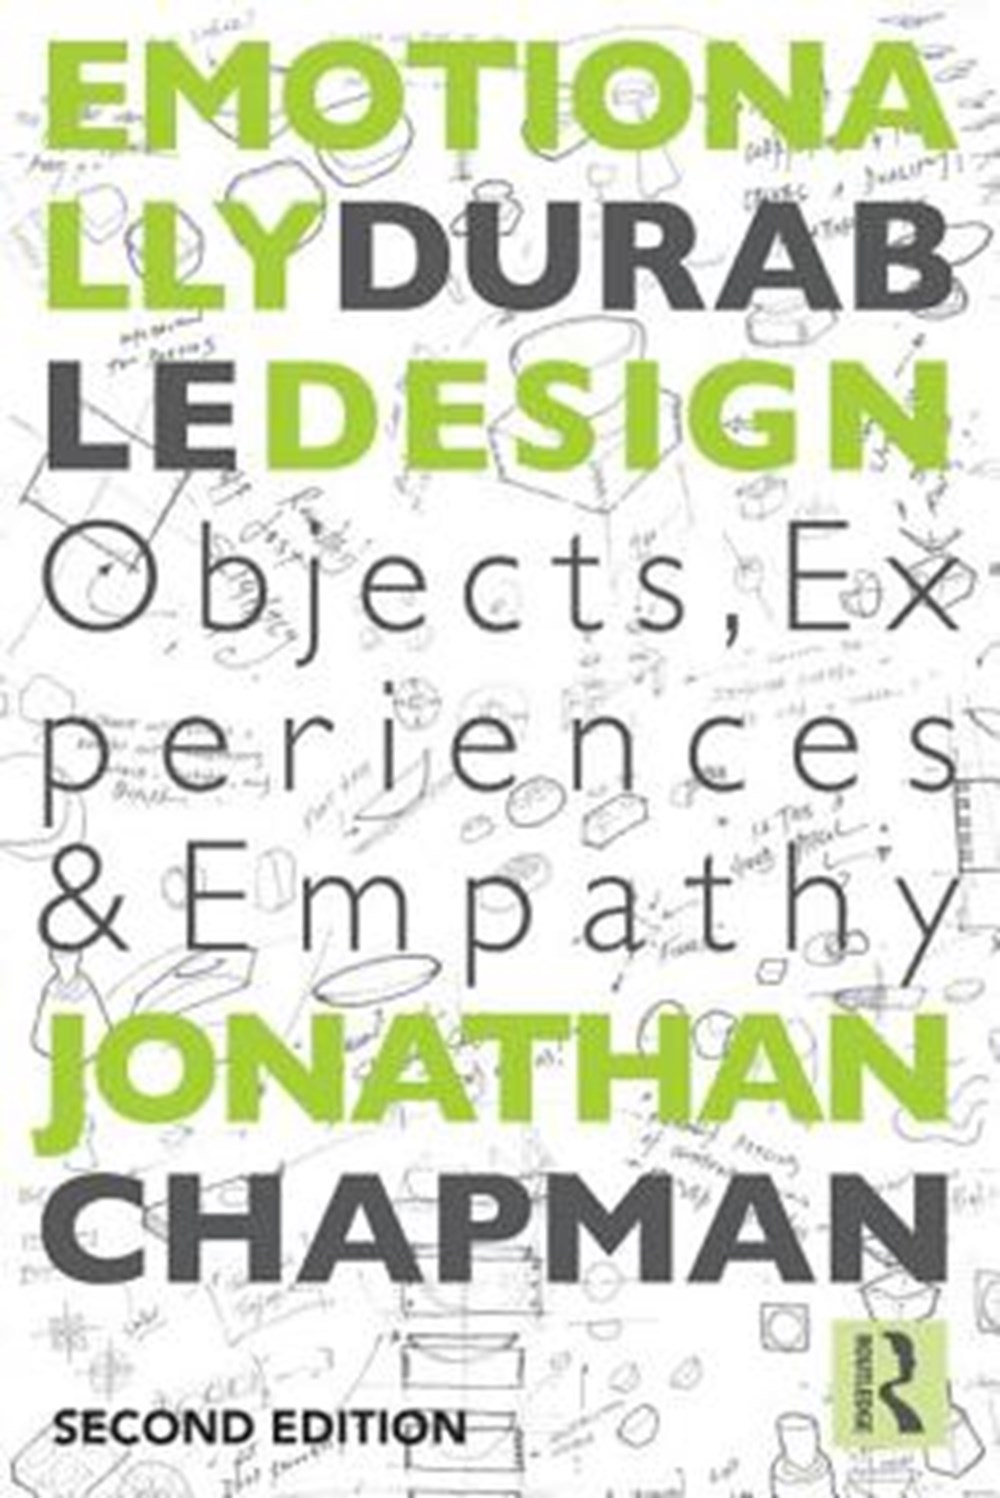 Emotionally Durable Design Objects, Experiences and Empathy